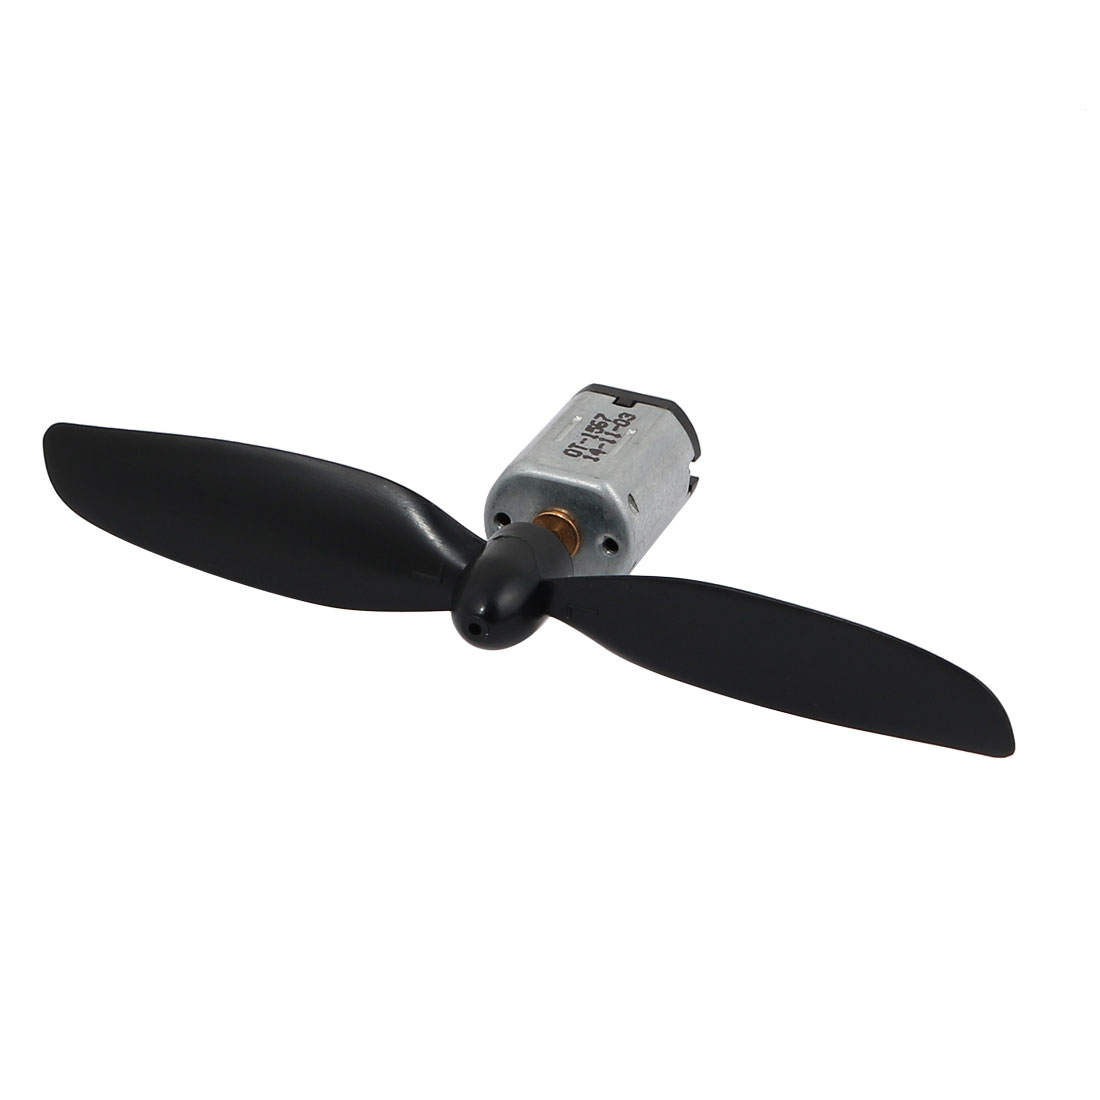 DC 4.2V 31000RPM N20 High Speed Strong Magnetic Motor w Helicopter CCW Propeller